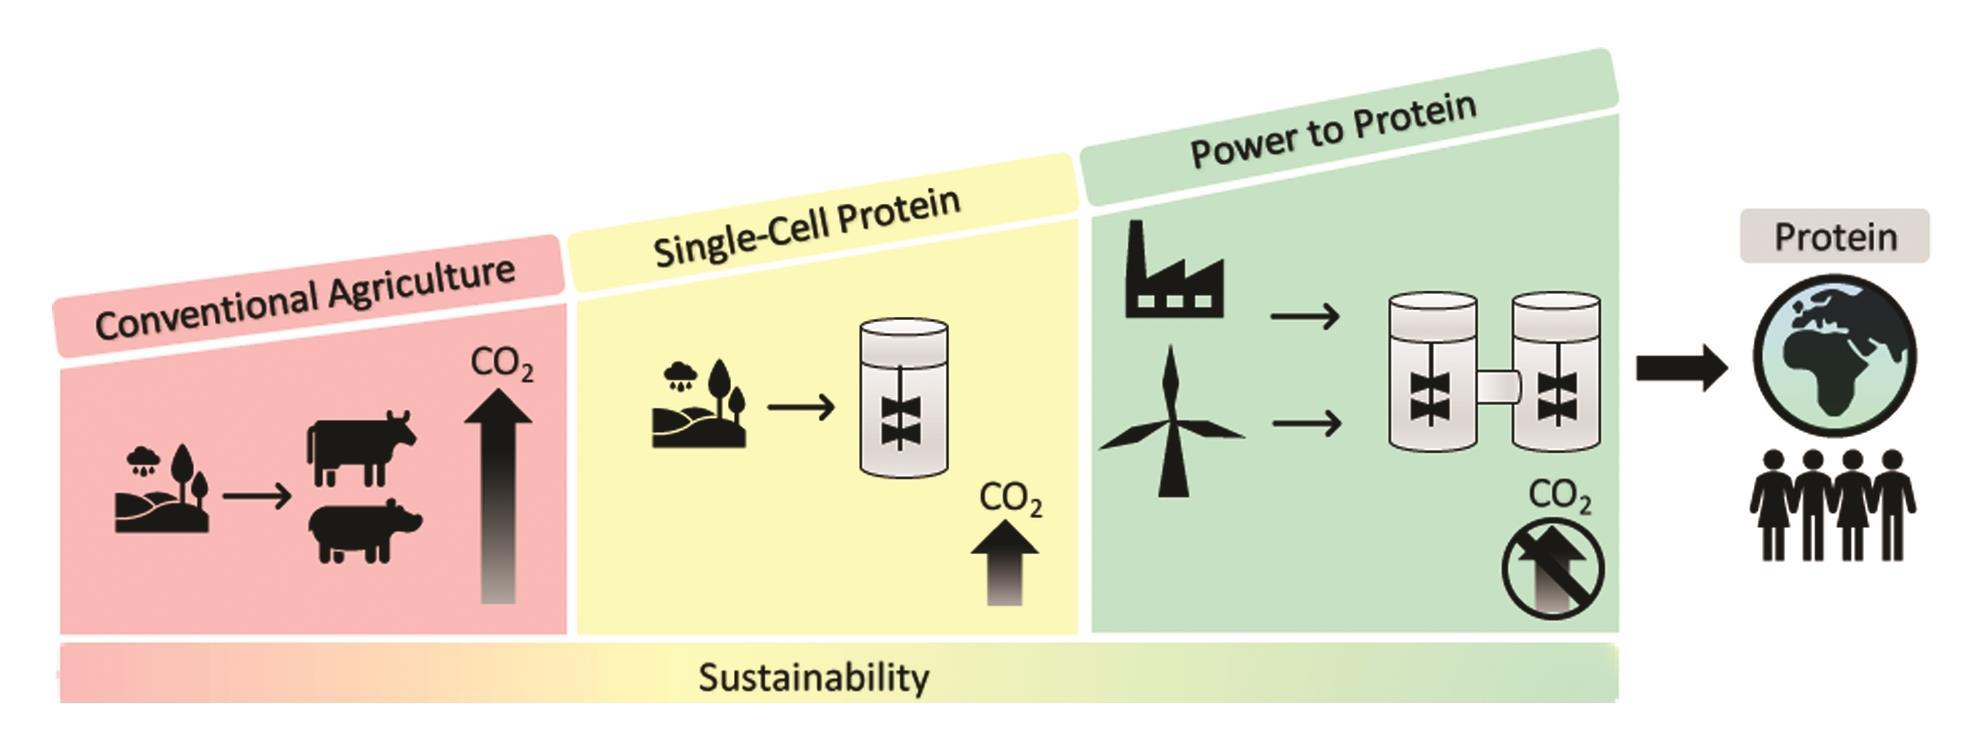 Microbes and renewable energy turn carbon dioxide into